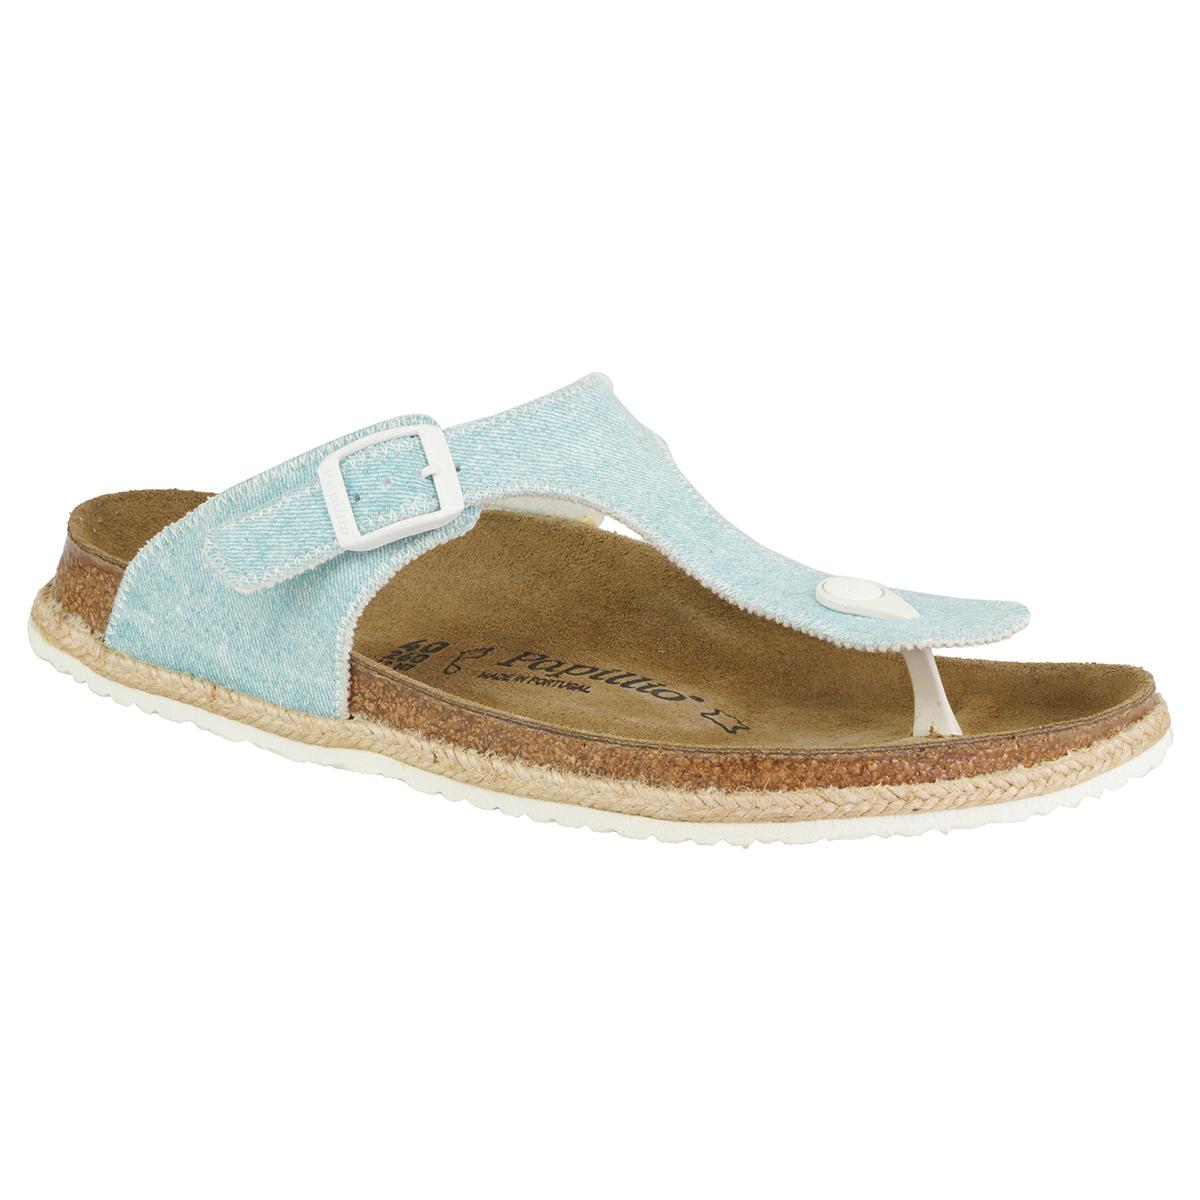 97fab45cf95 Details about Birkenstock Gizeh Papillio Textile Sandals Light Blue 38